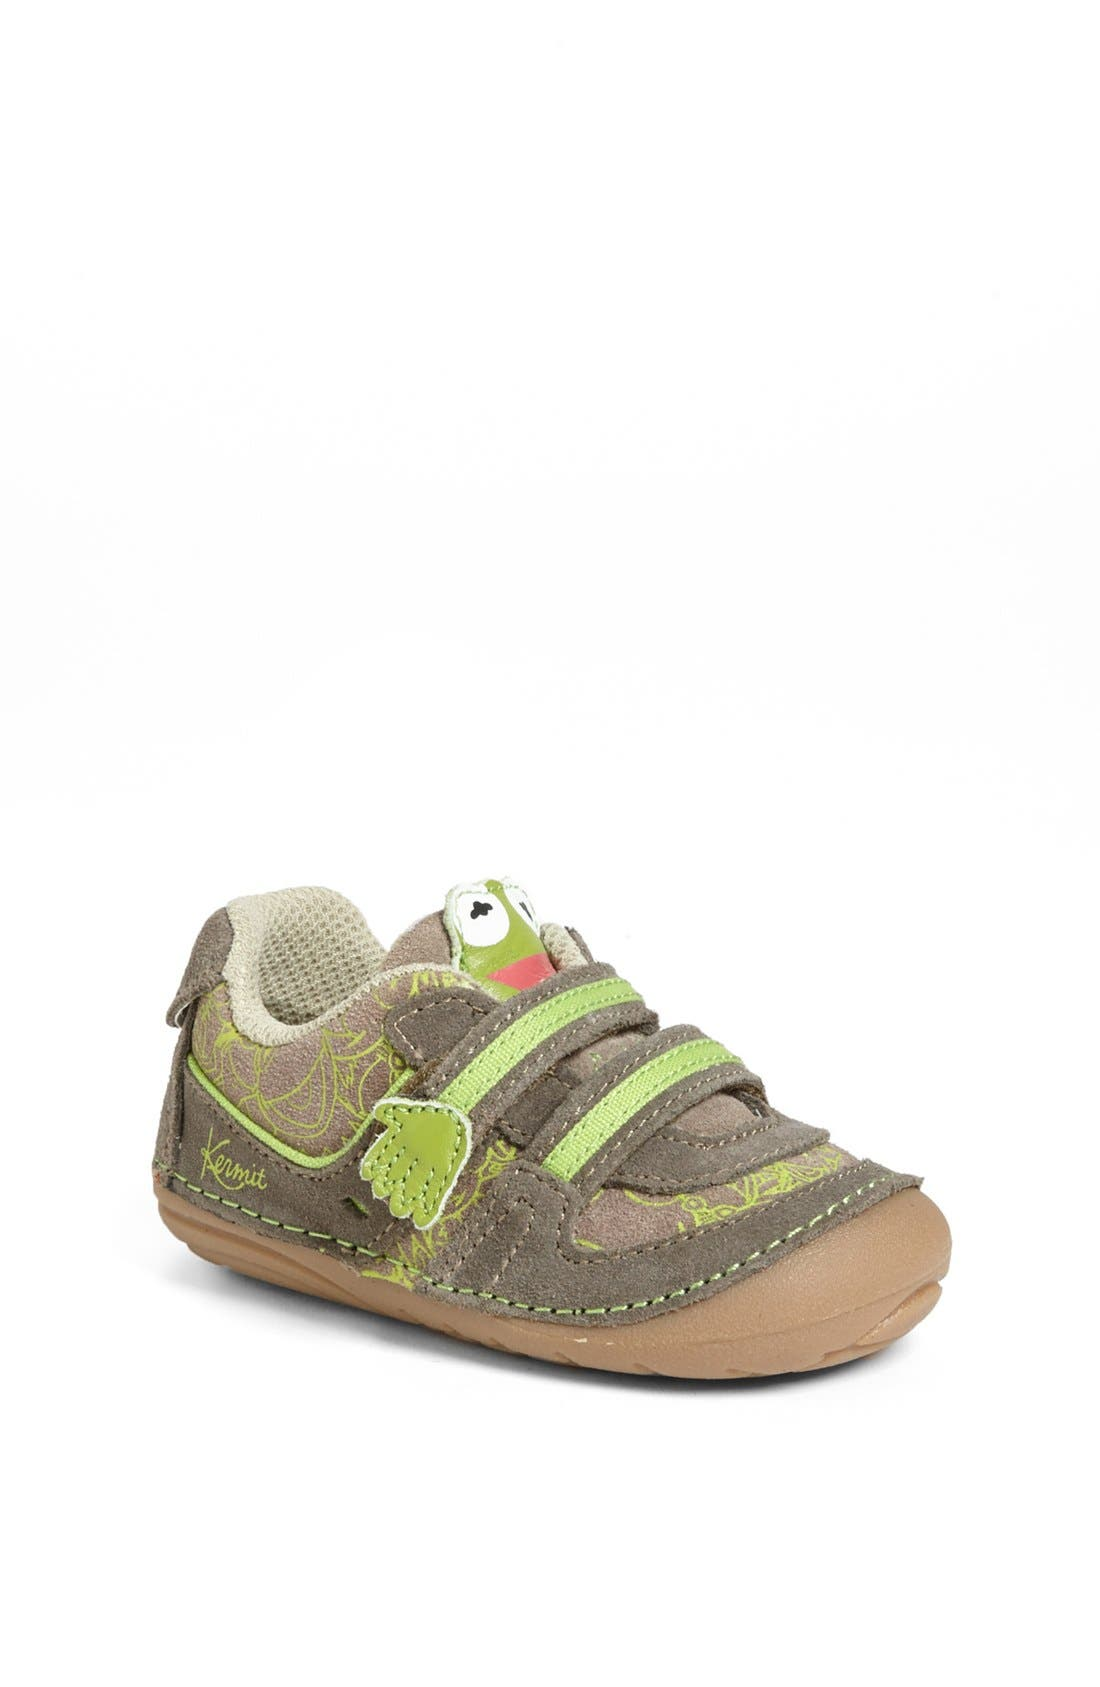 Alternate Image 1 Selected - Stride Rite 'Kermit' Sneaker (Baby & Walker)